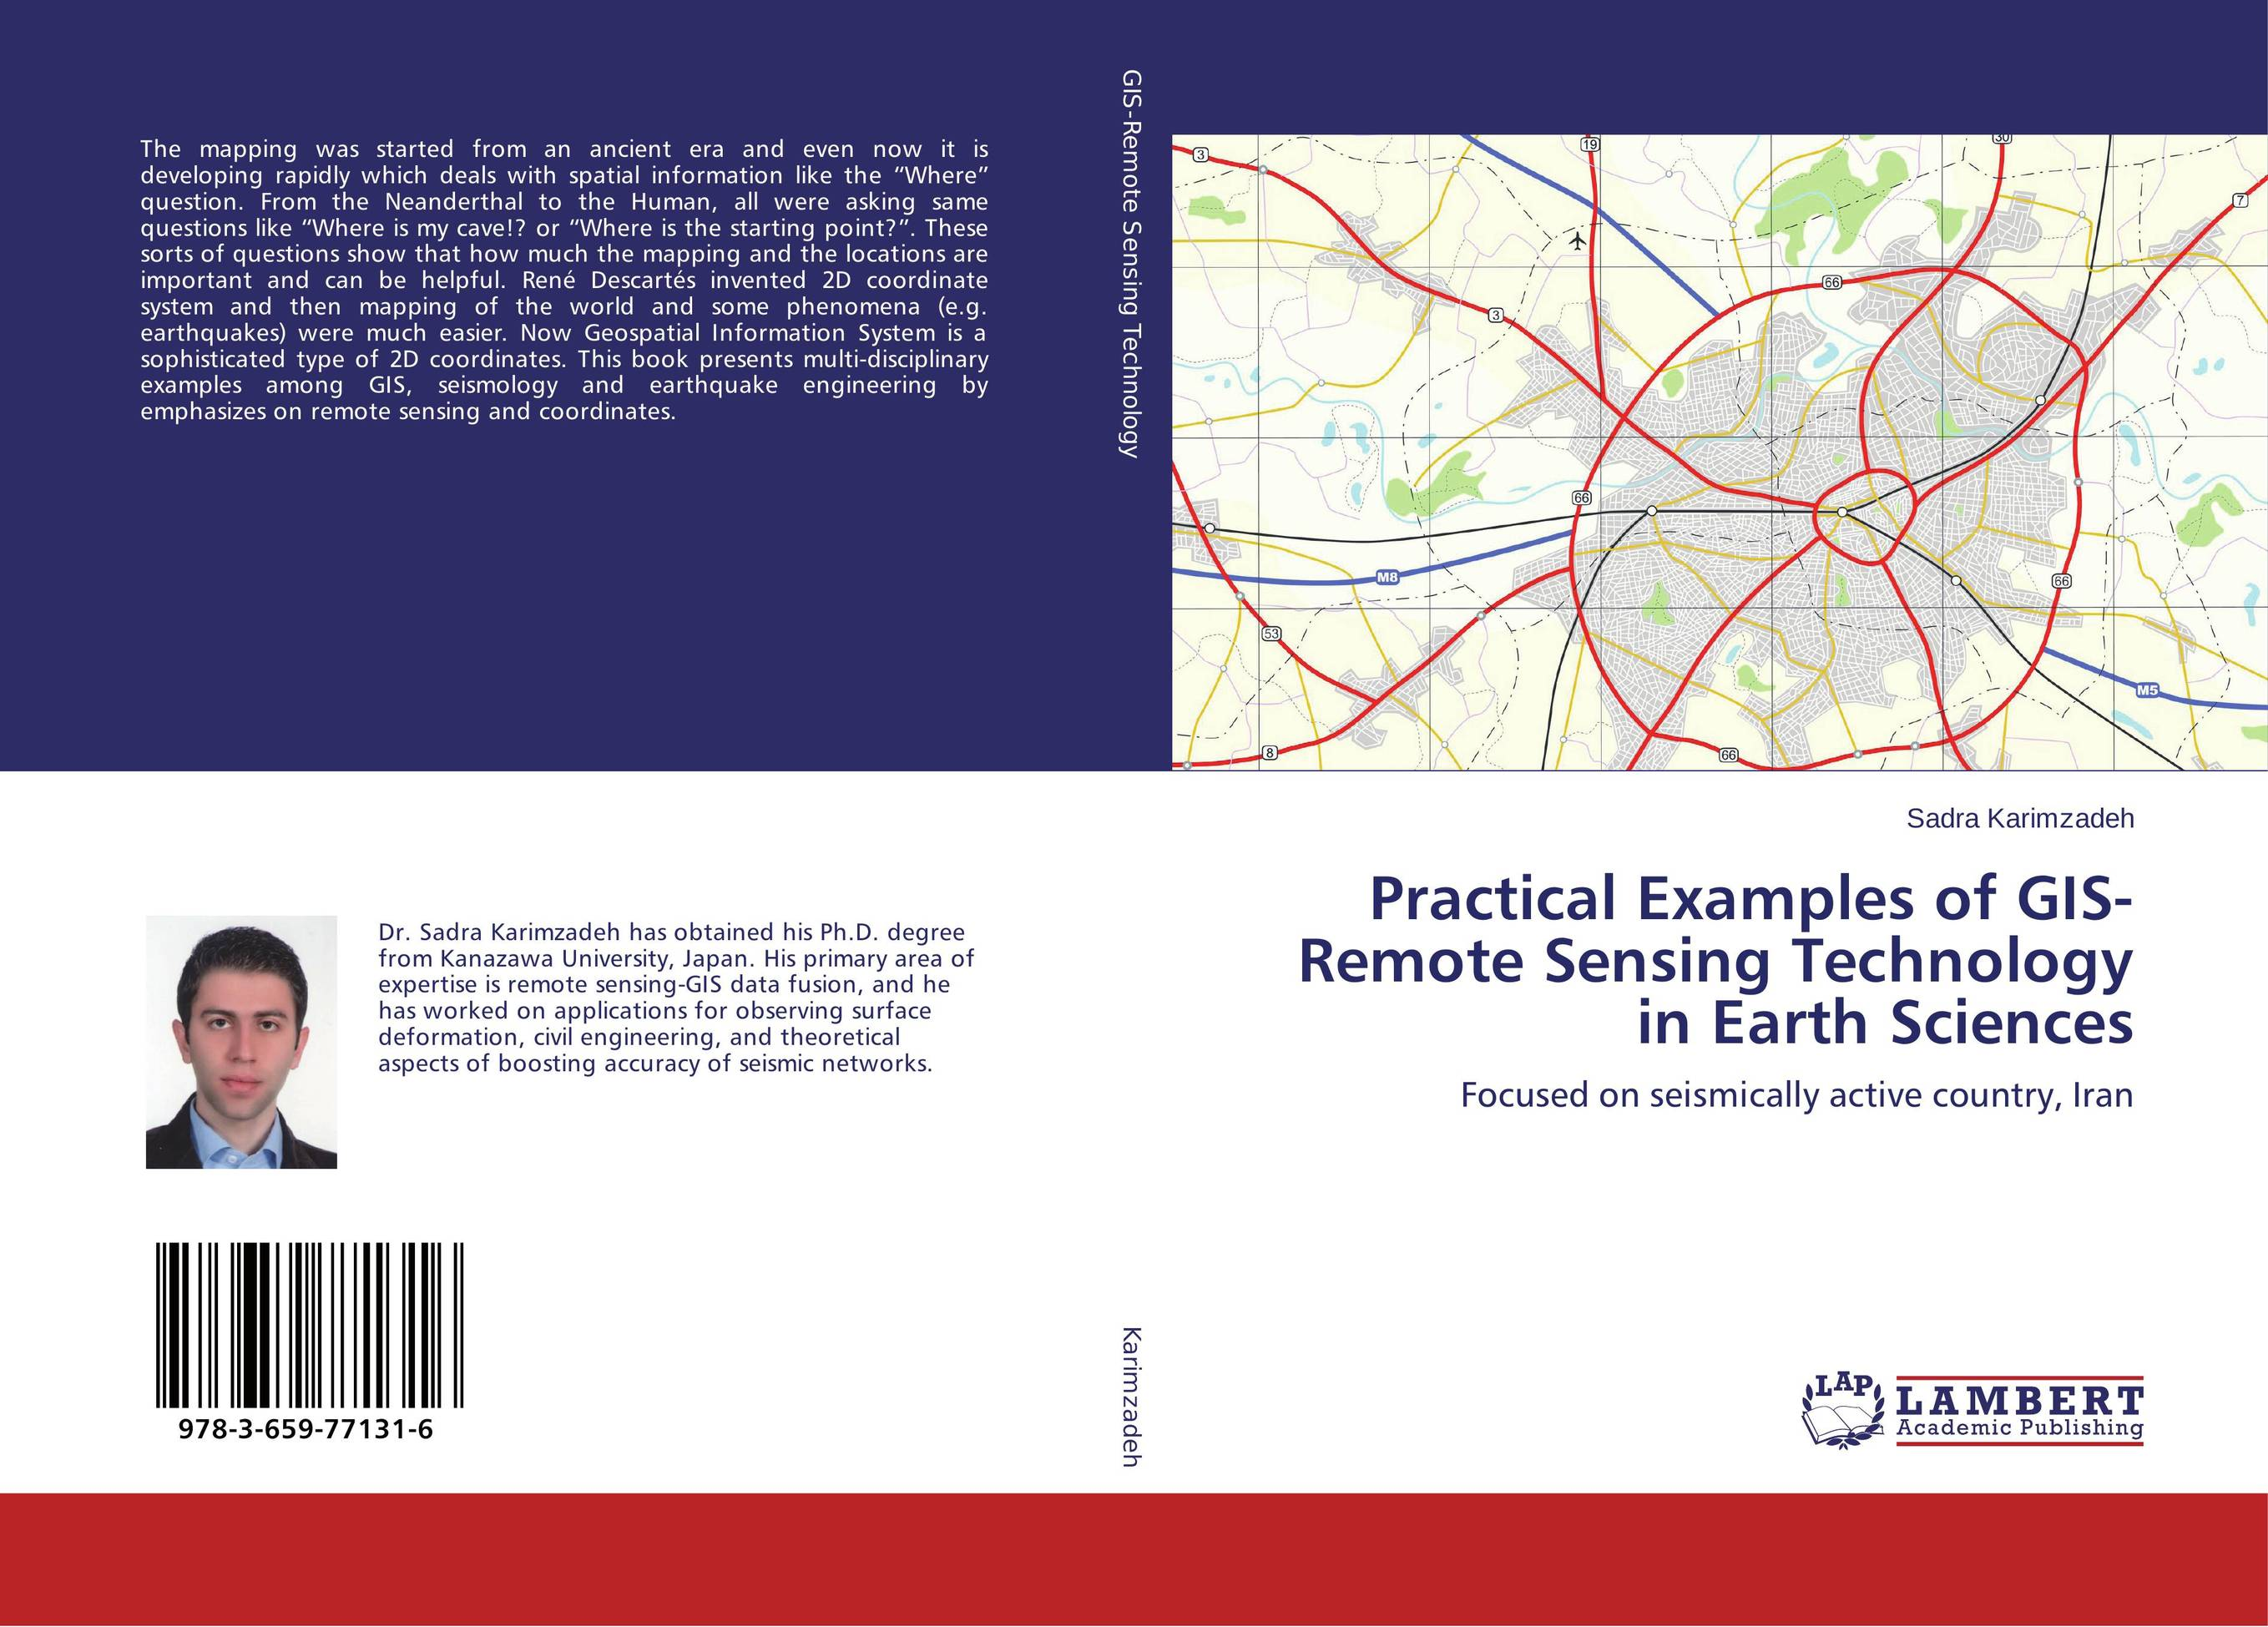 Practical Examples of GIS-Remote Sensing Technology in Earth Sciences wasteland mapping using remote sensing and gis